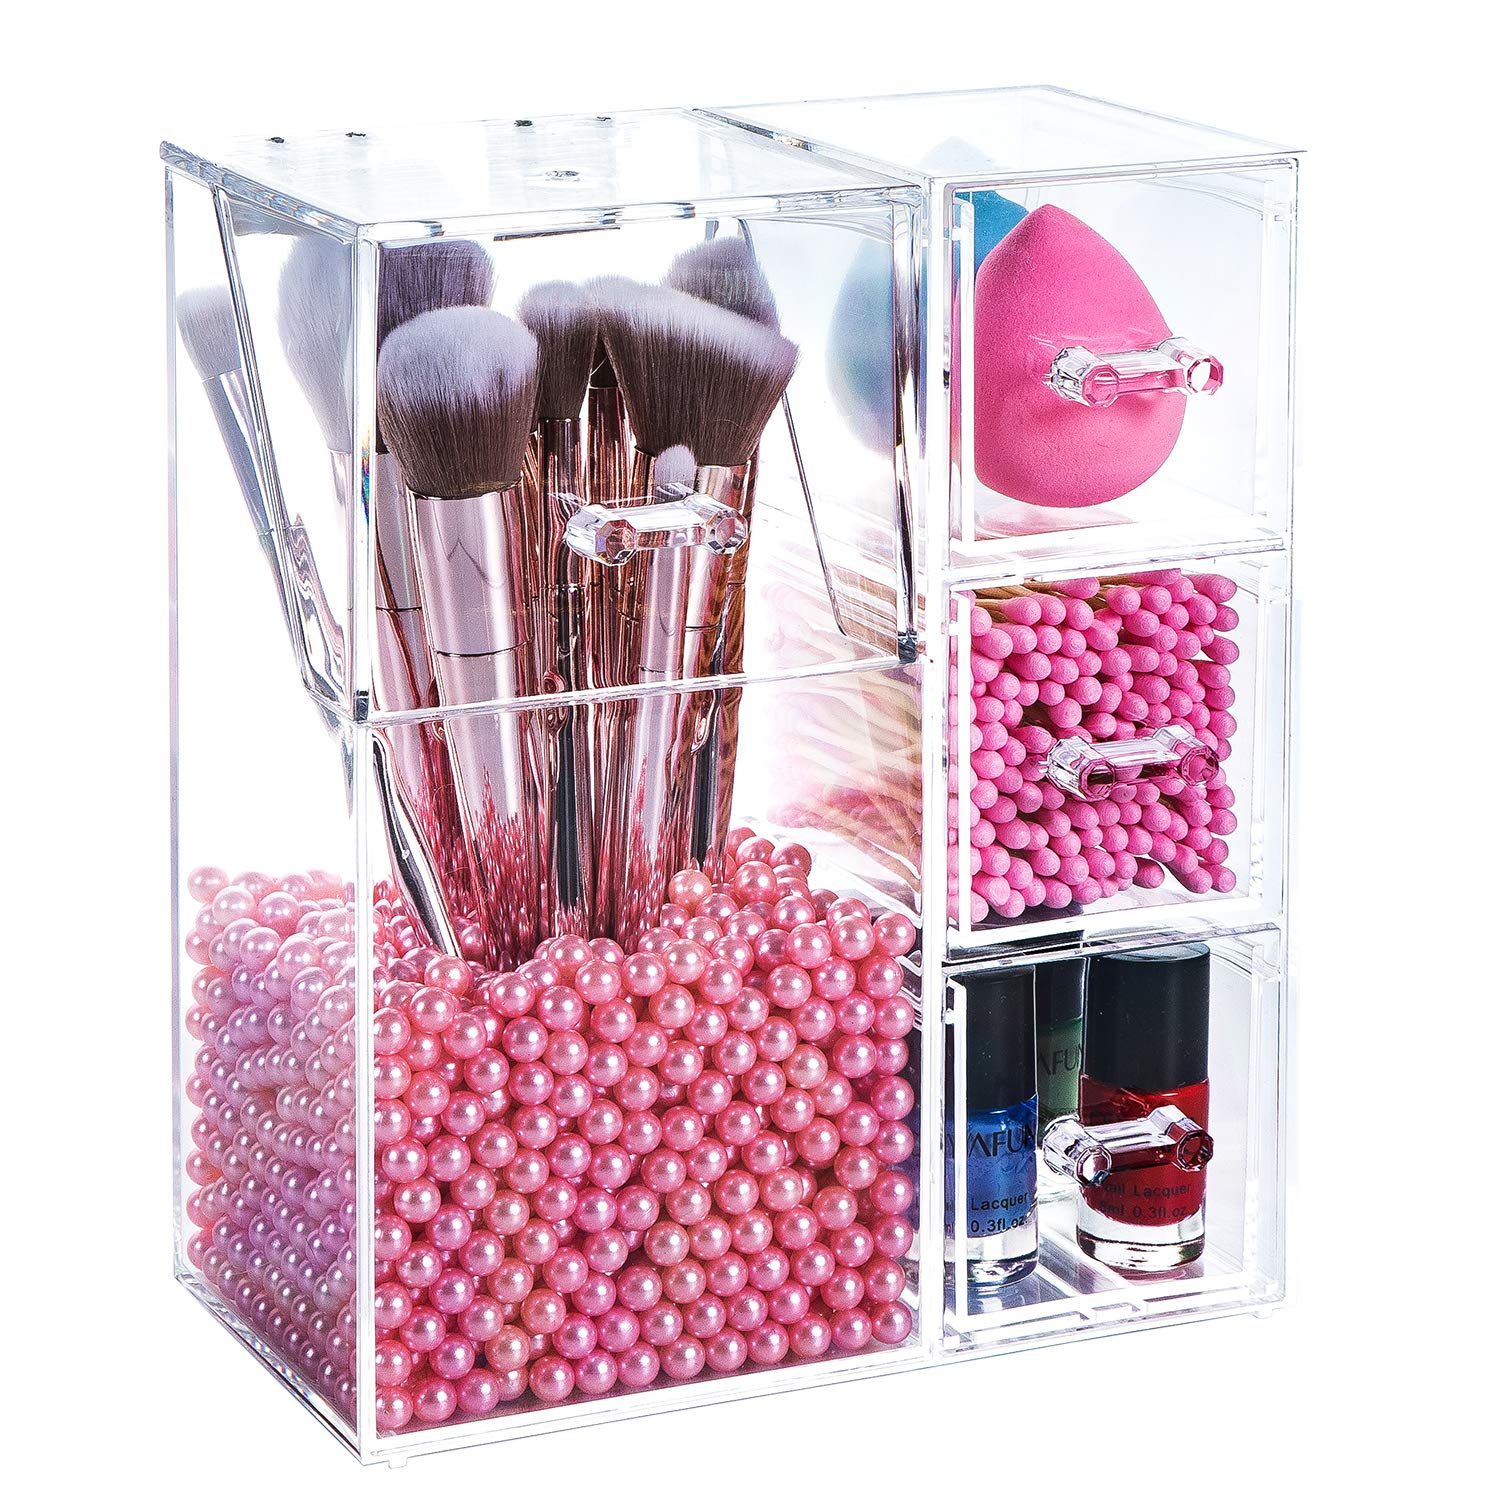 Yoelrsa Acrylic Makeup Box, Makeup Brush Holder with Lid and 3 Drawers, Waterproof and Dustproof Cosmetic Brush Organizer with Free Pearls, Used for the Dressing Table (XL+Drawers, Pink)